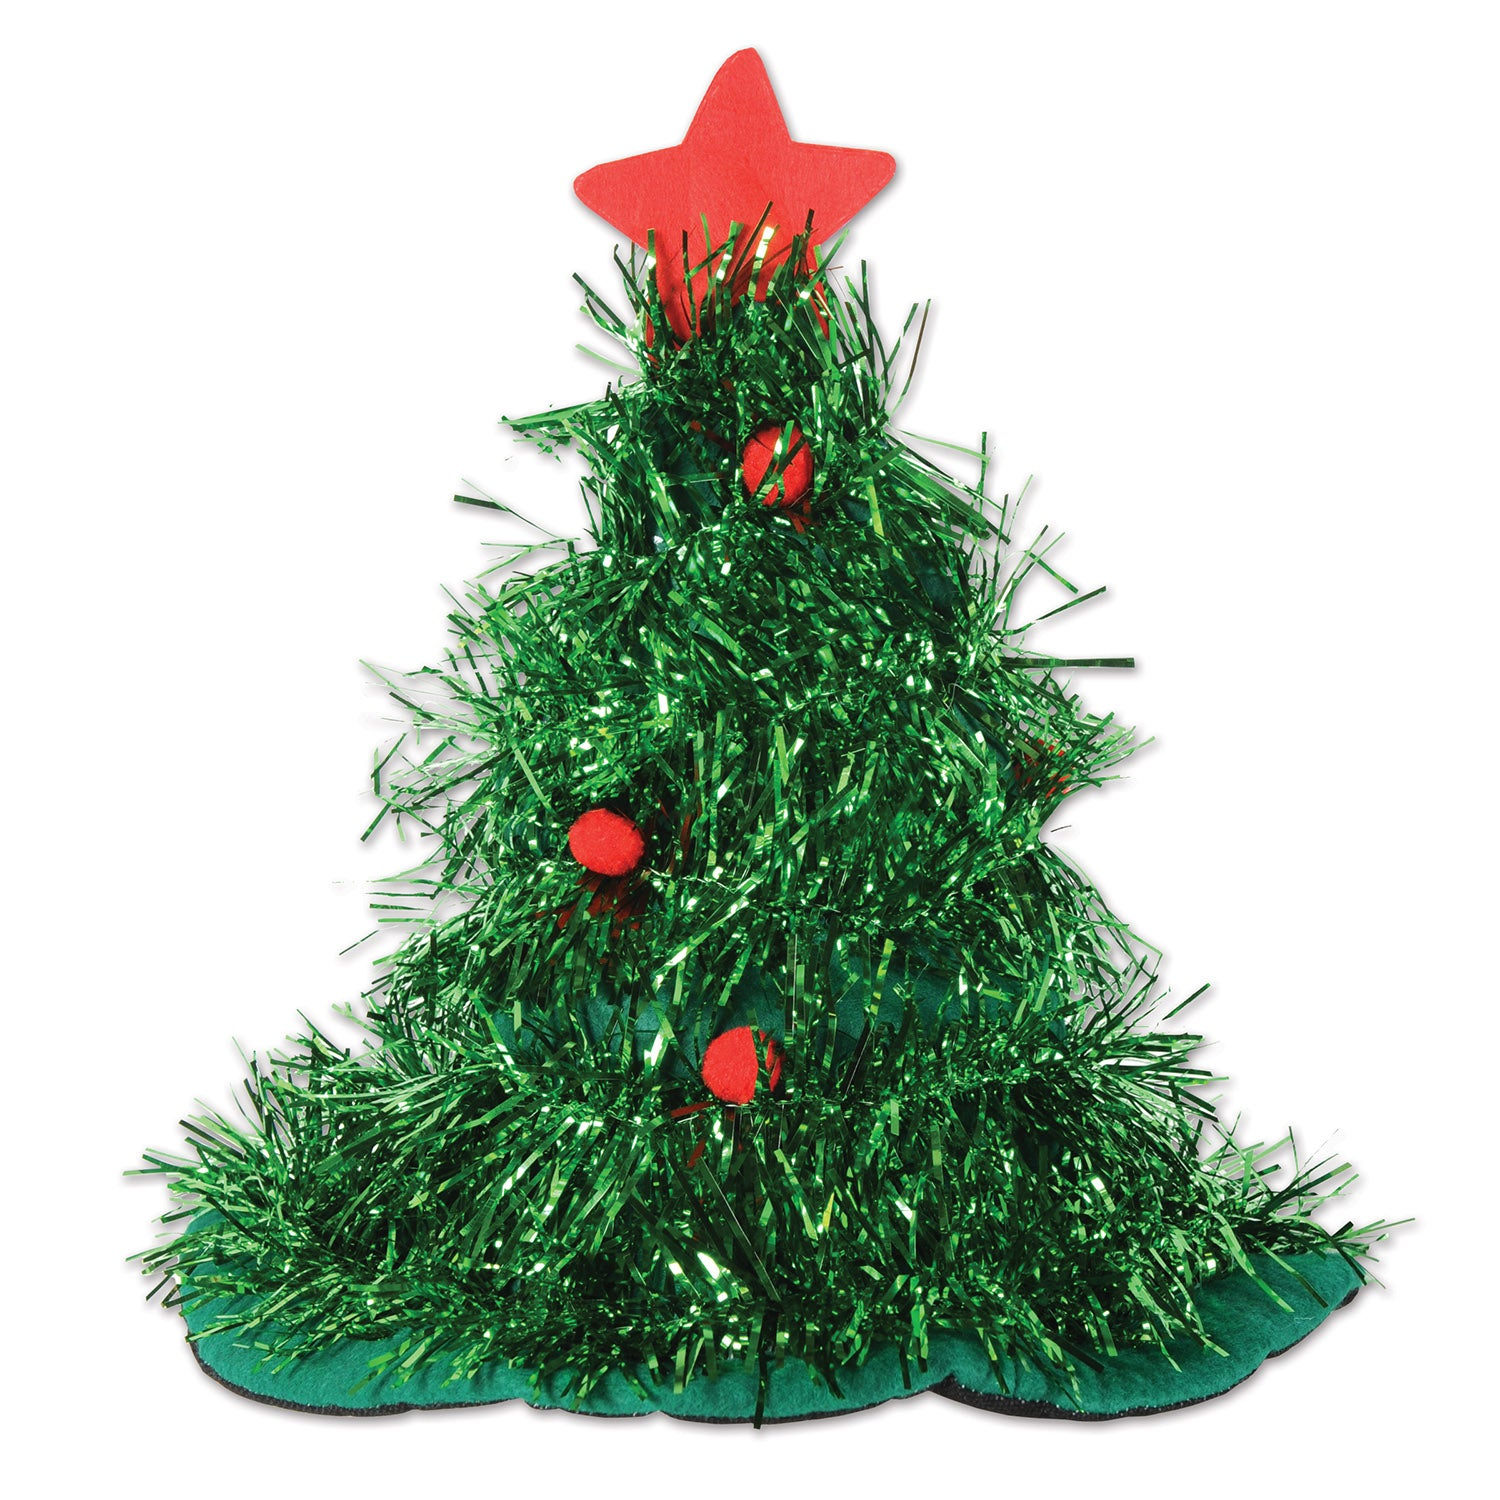 Tinsel Christmas Tree.Tinsel Christmas Tree Hat Case Of 12